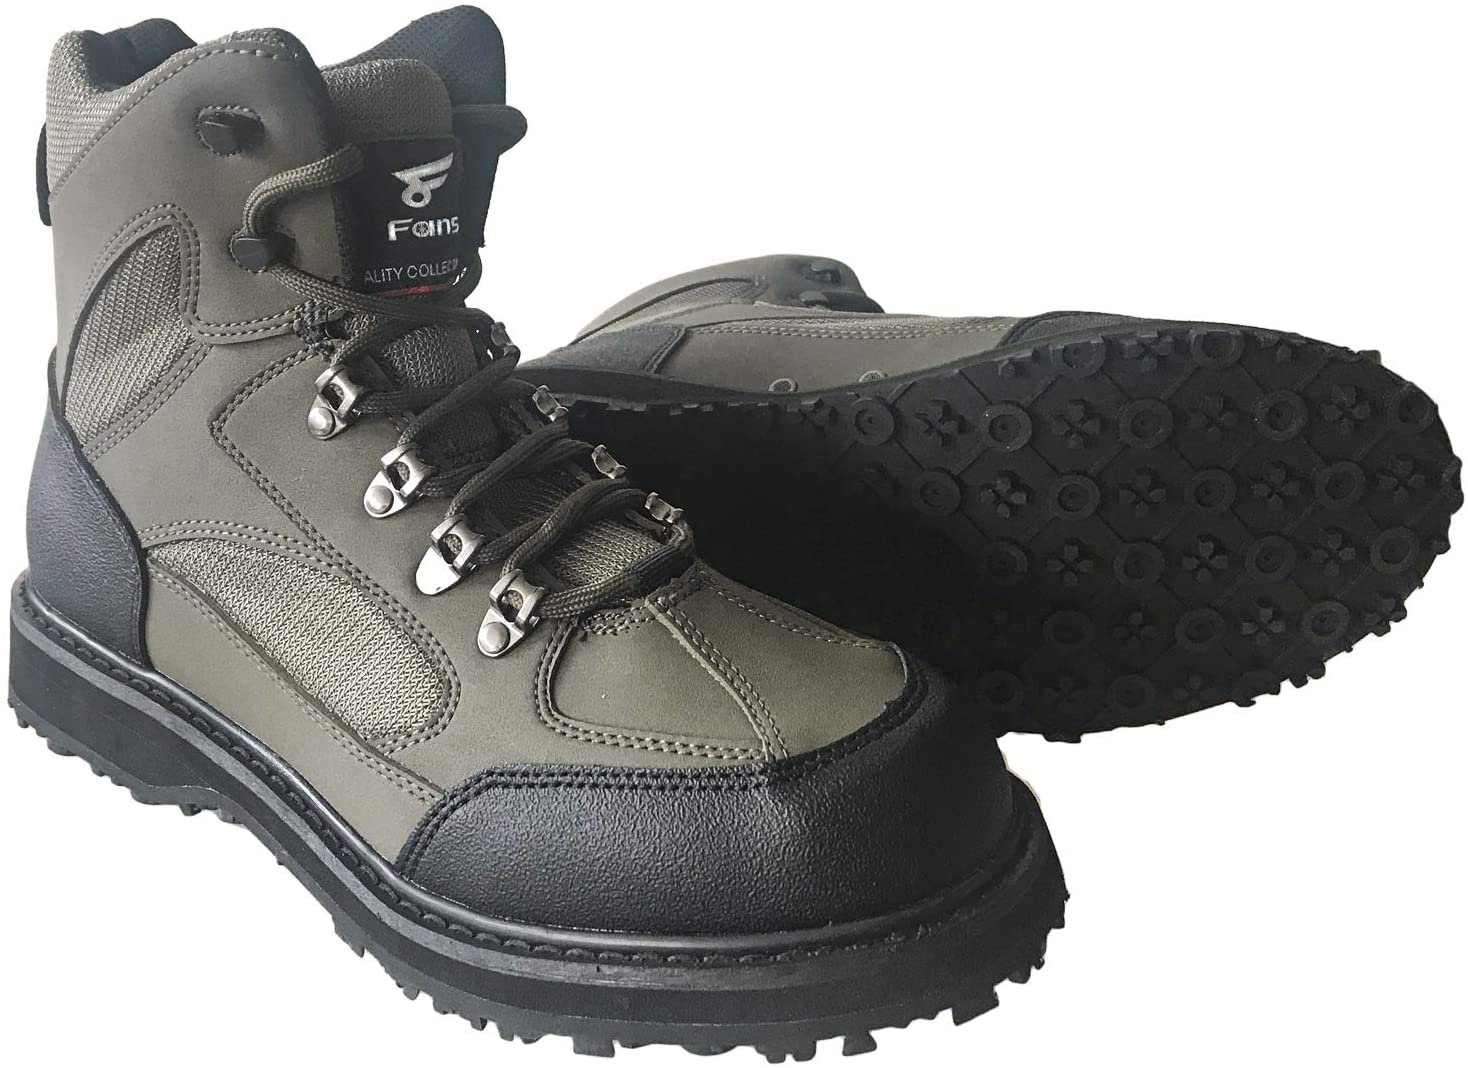 8 Fans Budget wading boots